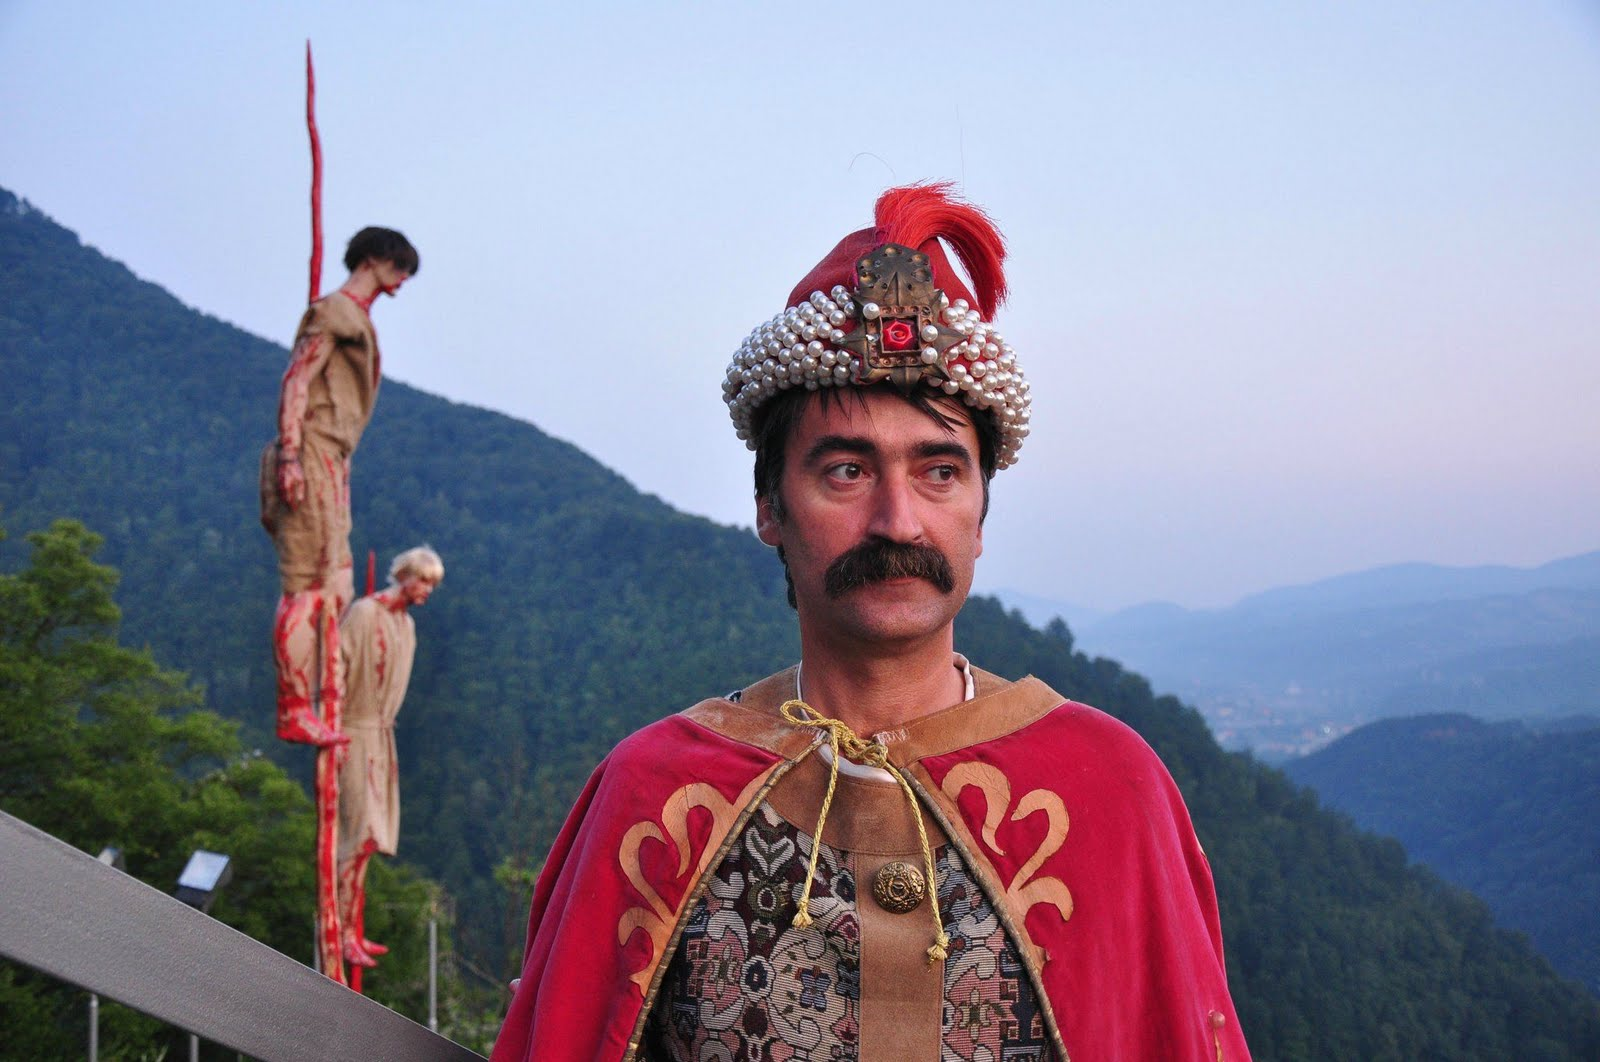 Free Pictures, Images and Photos Vlad The Impaler Impaling Method